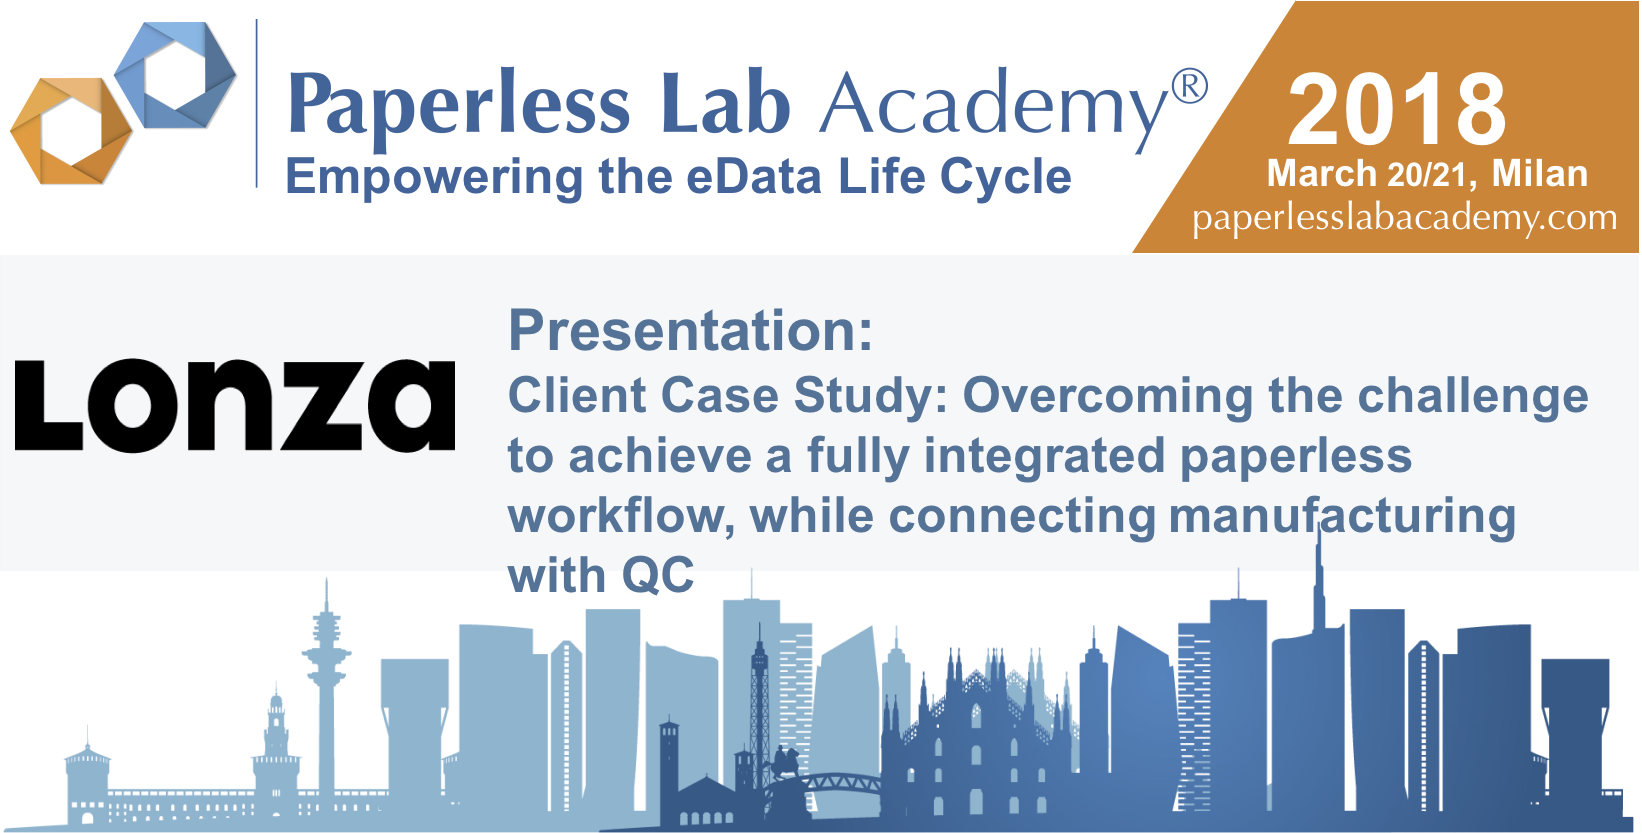 lonza paperless lab academy